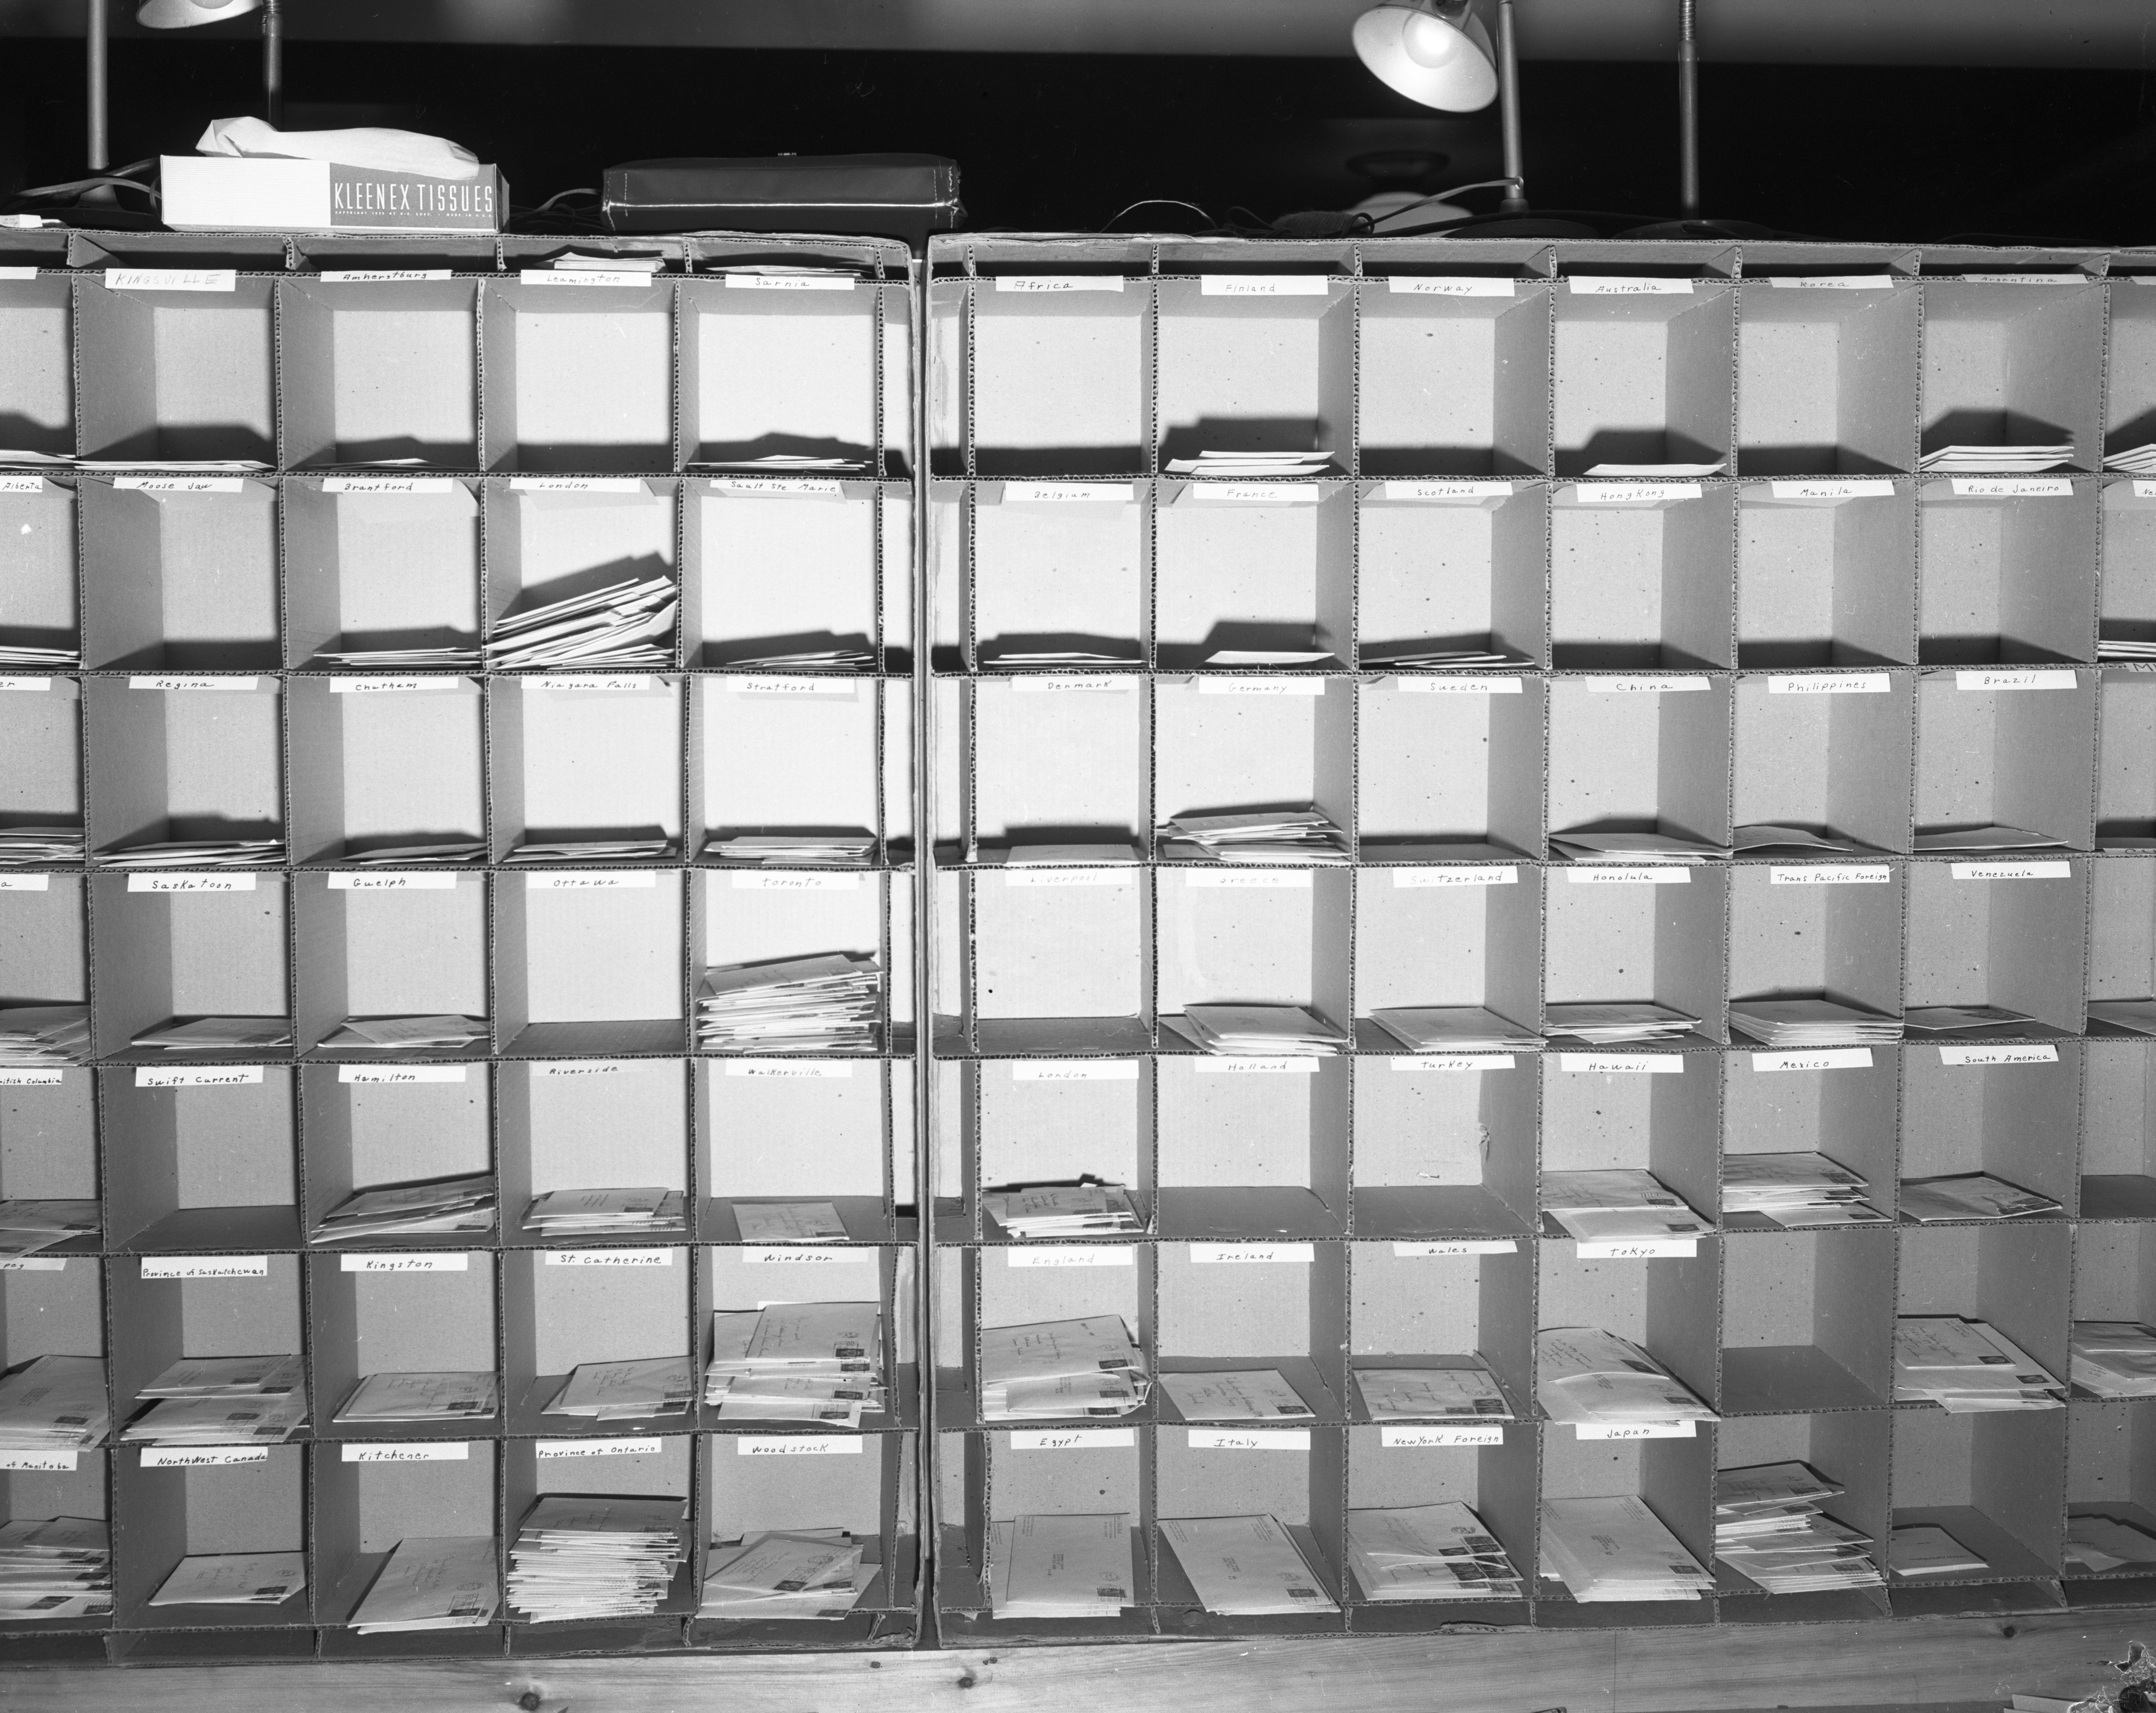 A mail sorting box at the Ann Arbor Post Office is key to handling holiday mail, December 1955 image